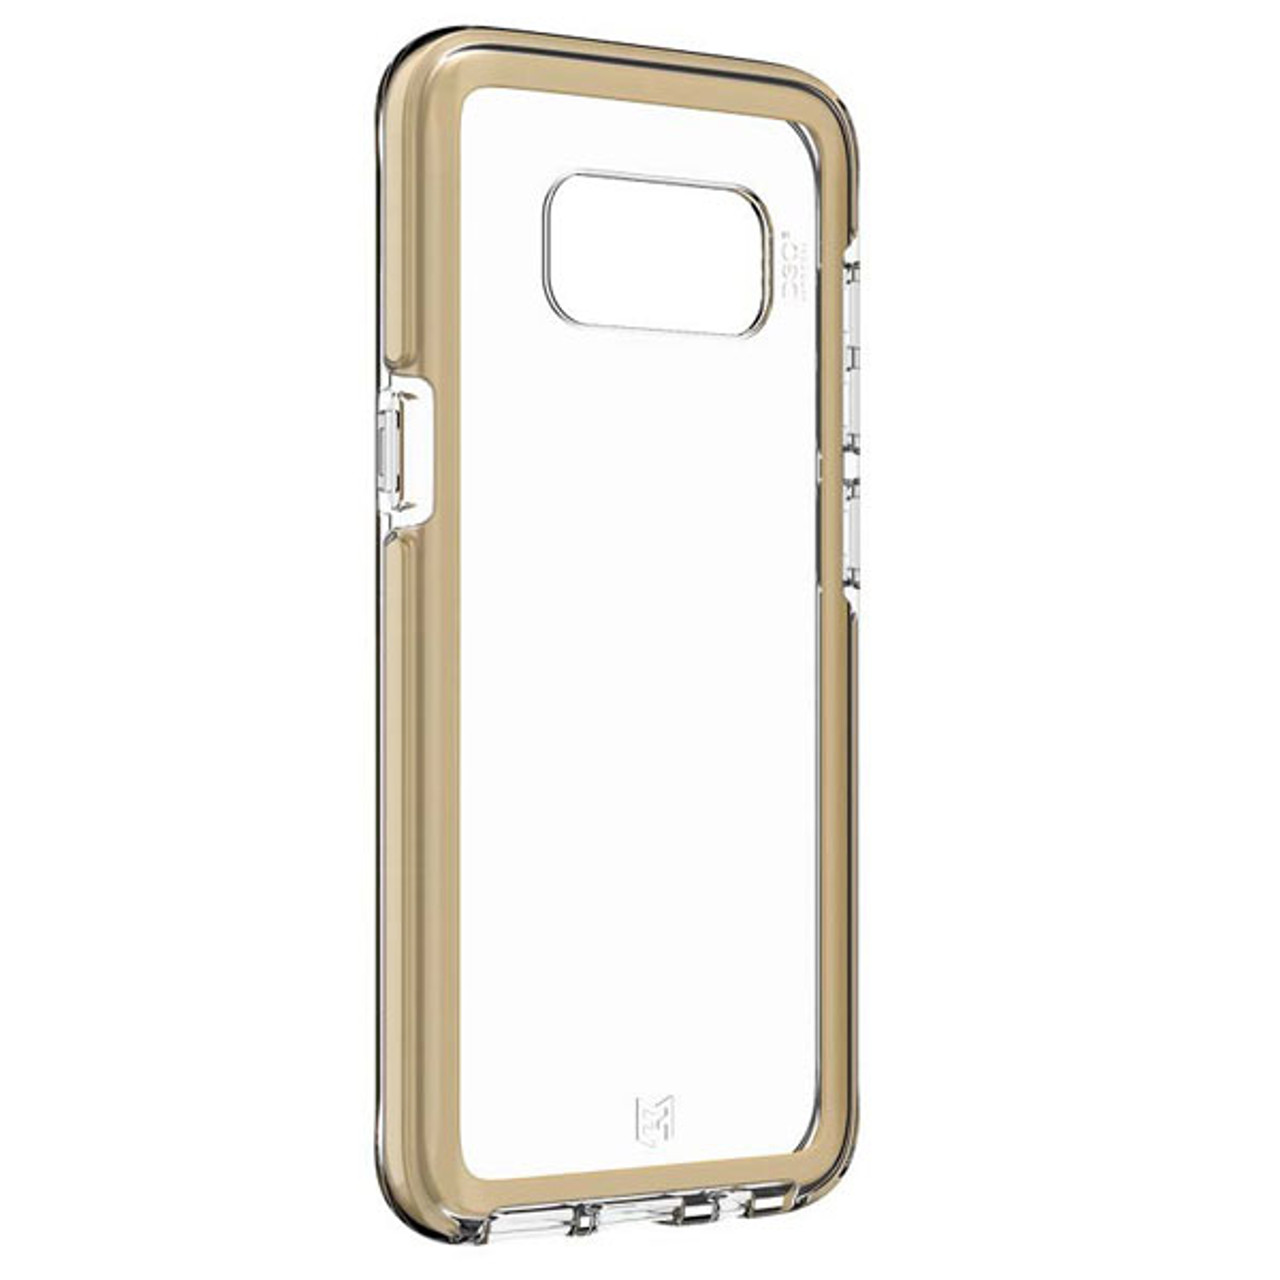 competitive price 4f4cc 8d613 EFM Aspen D3O® Case Armour Samsung Galaxy S8+ Plus - Crystal/Gold